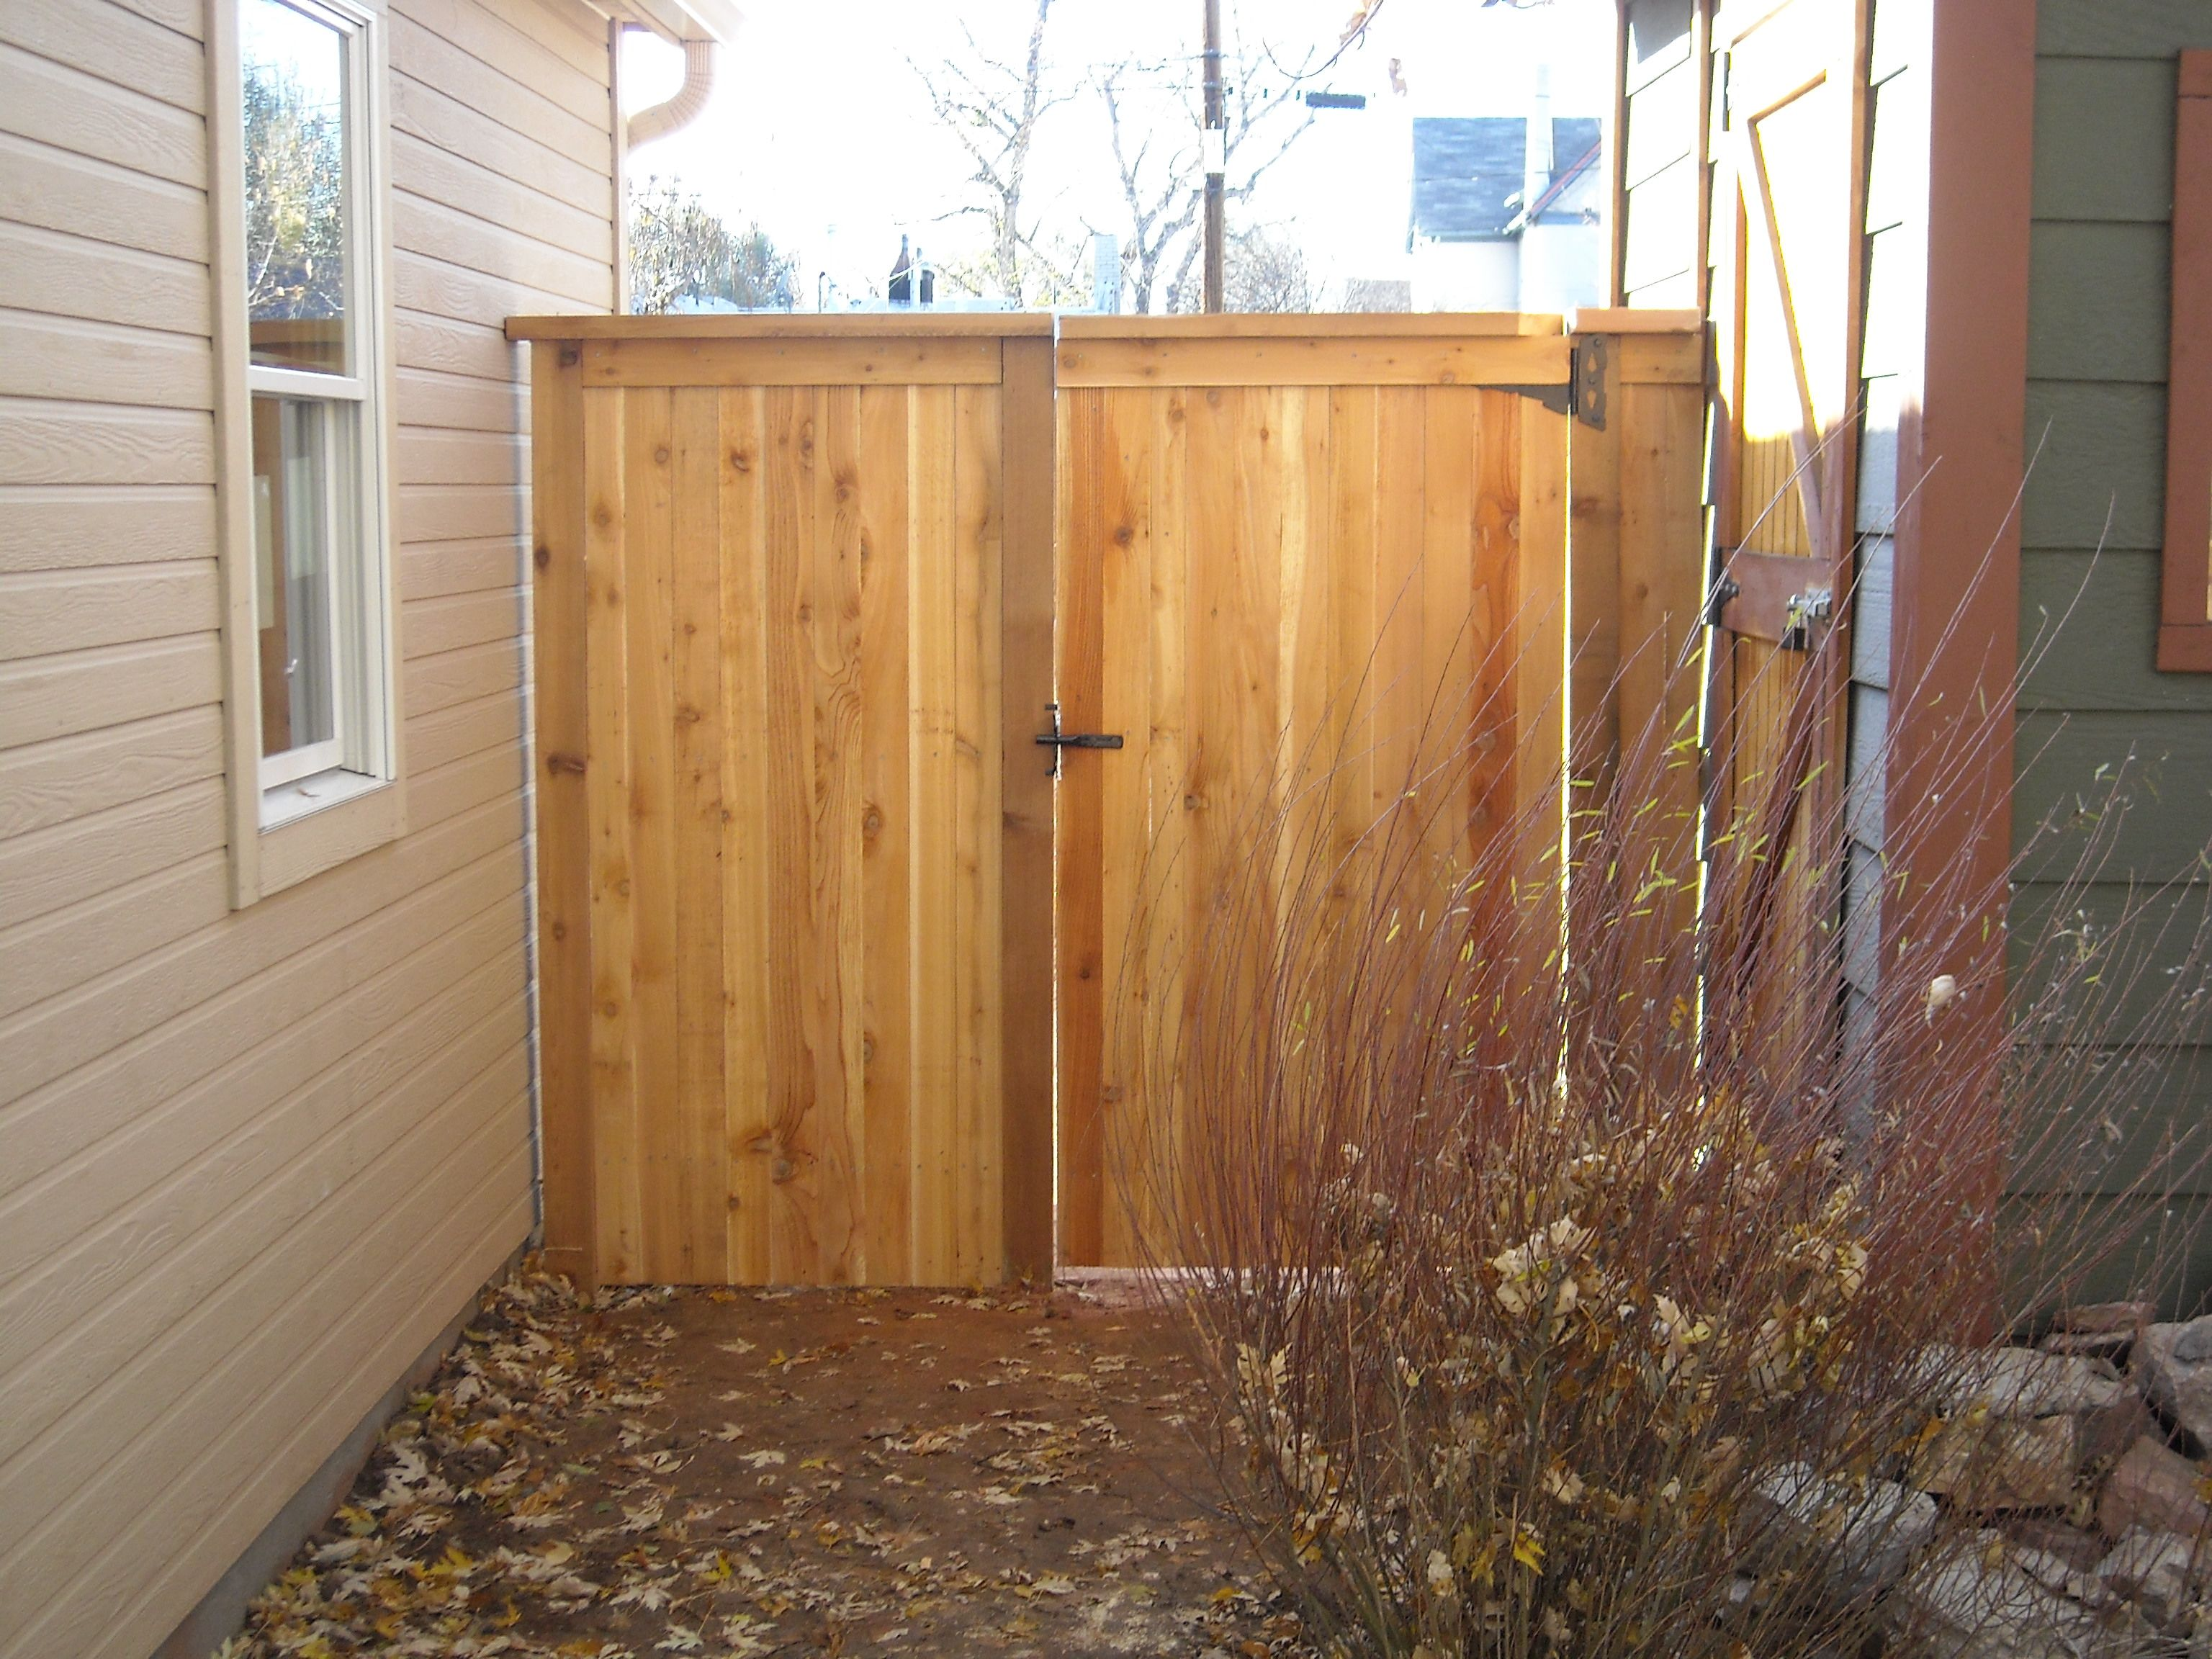 Cedar fence example google search fence pinterest fence cedar fence example google search baanklon Image collections